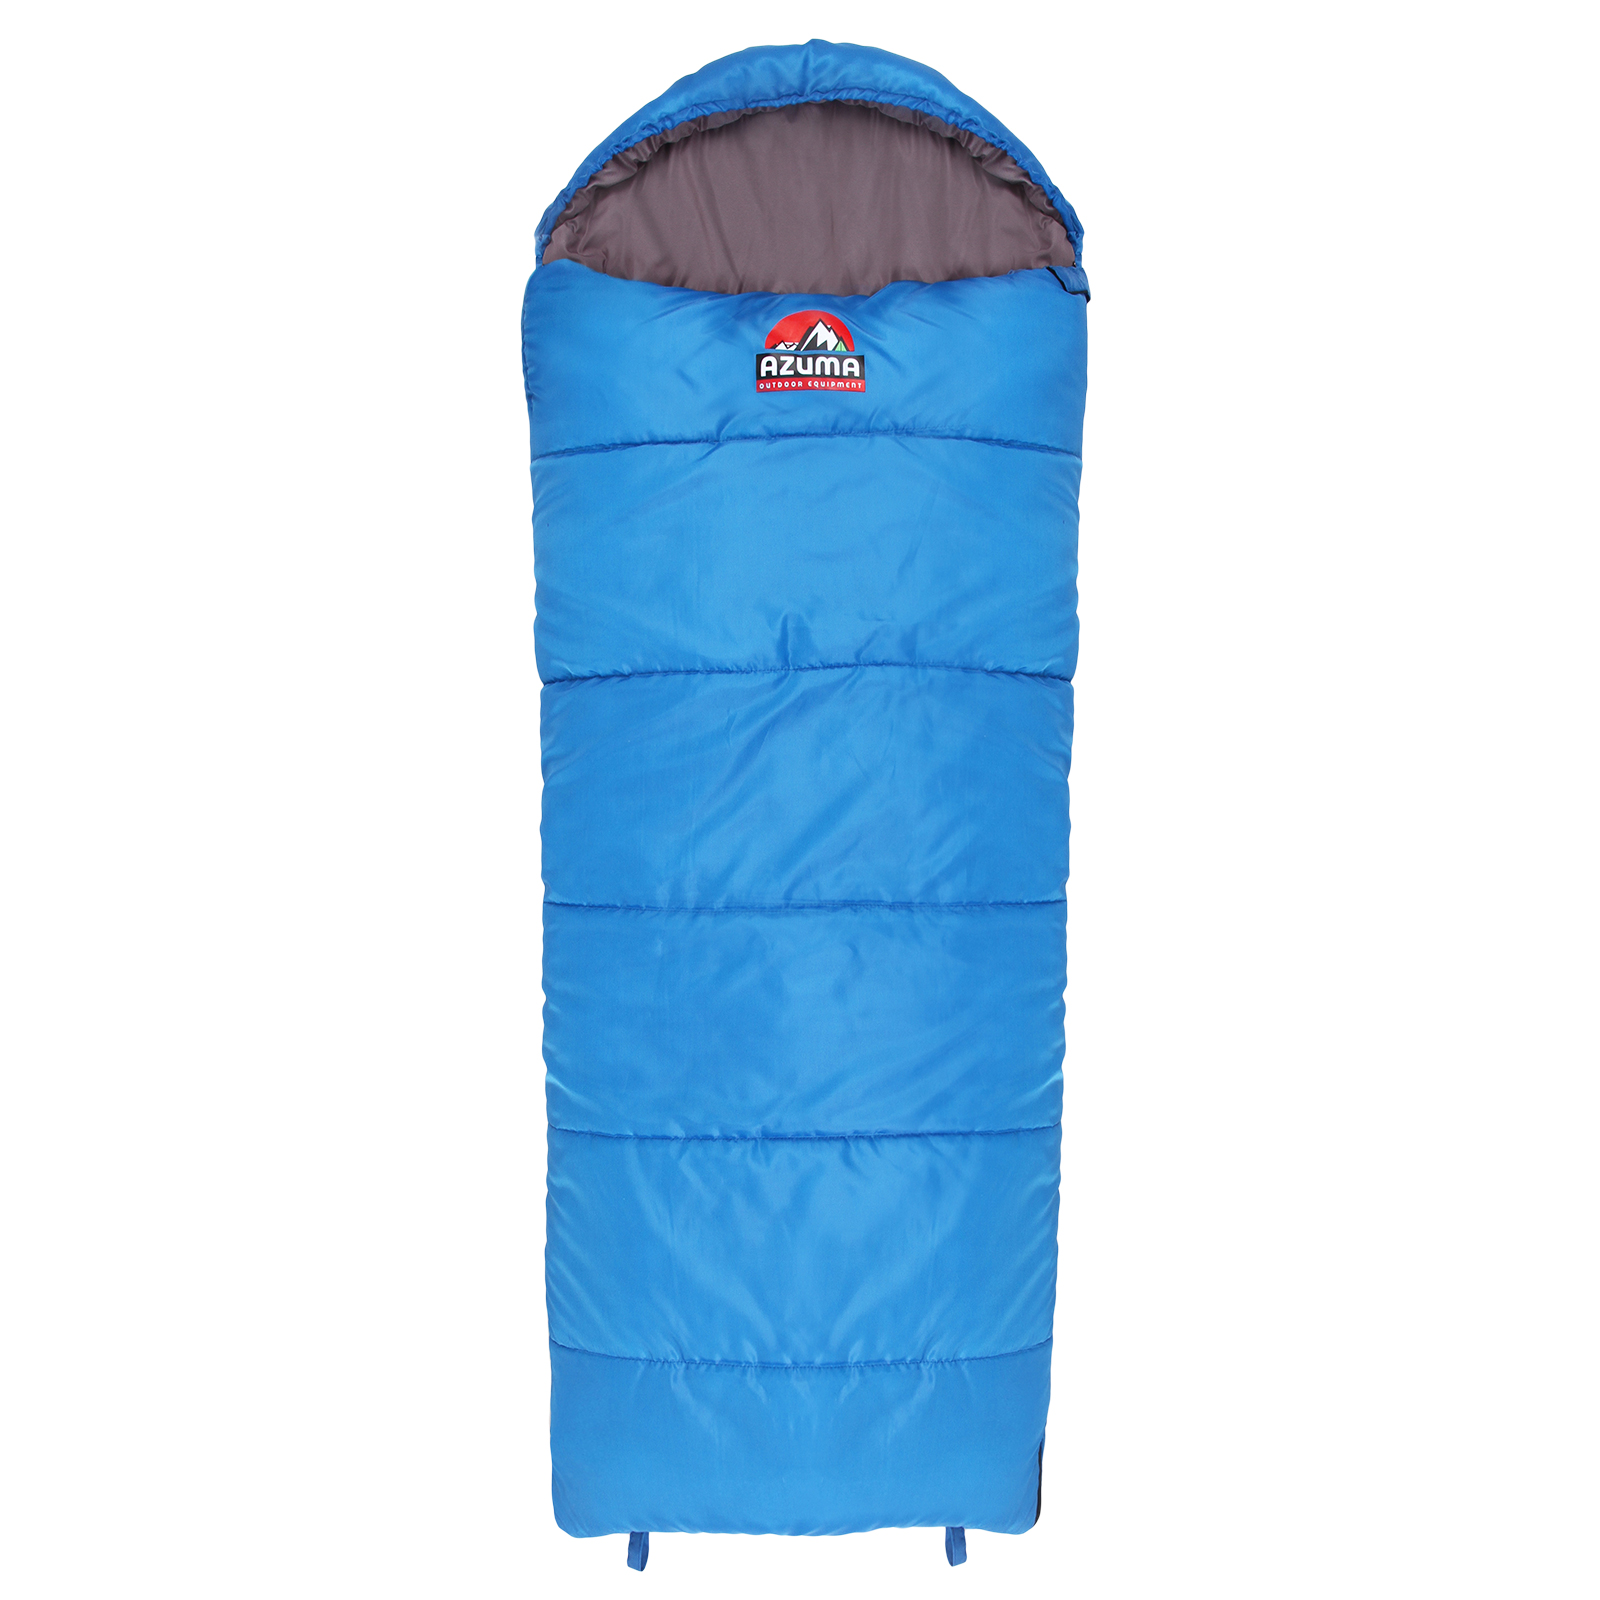 Azuma Childrens Kids Junior Mummy Sleeping Bag 1-2 Season Camping Sleepovers